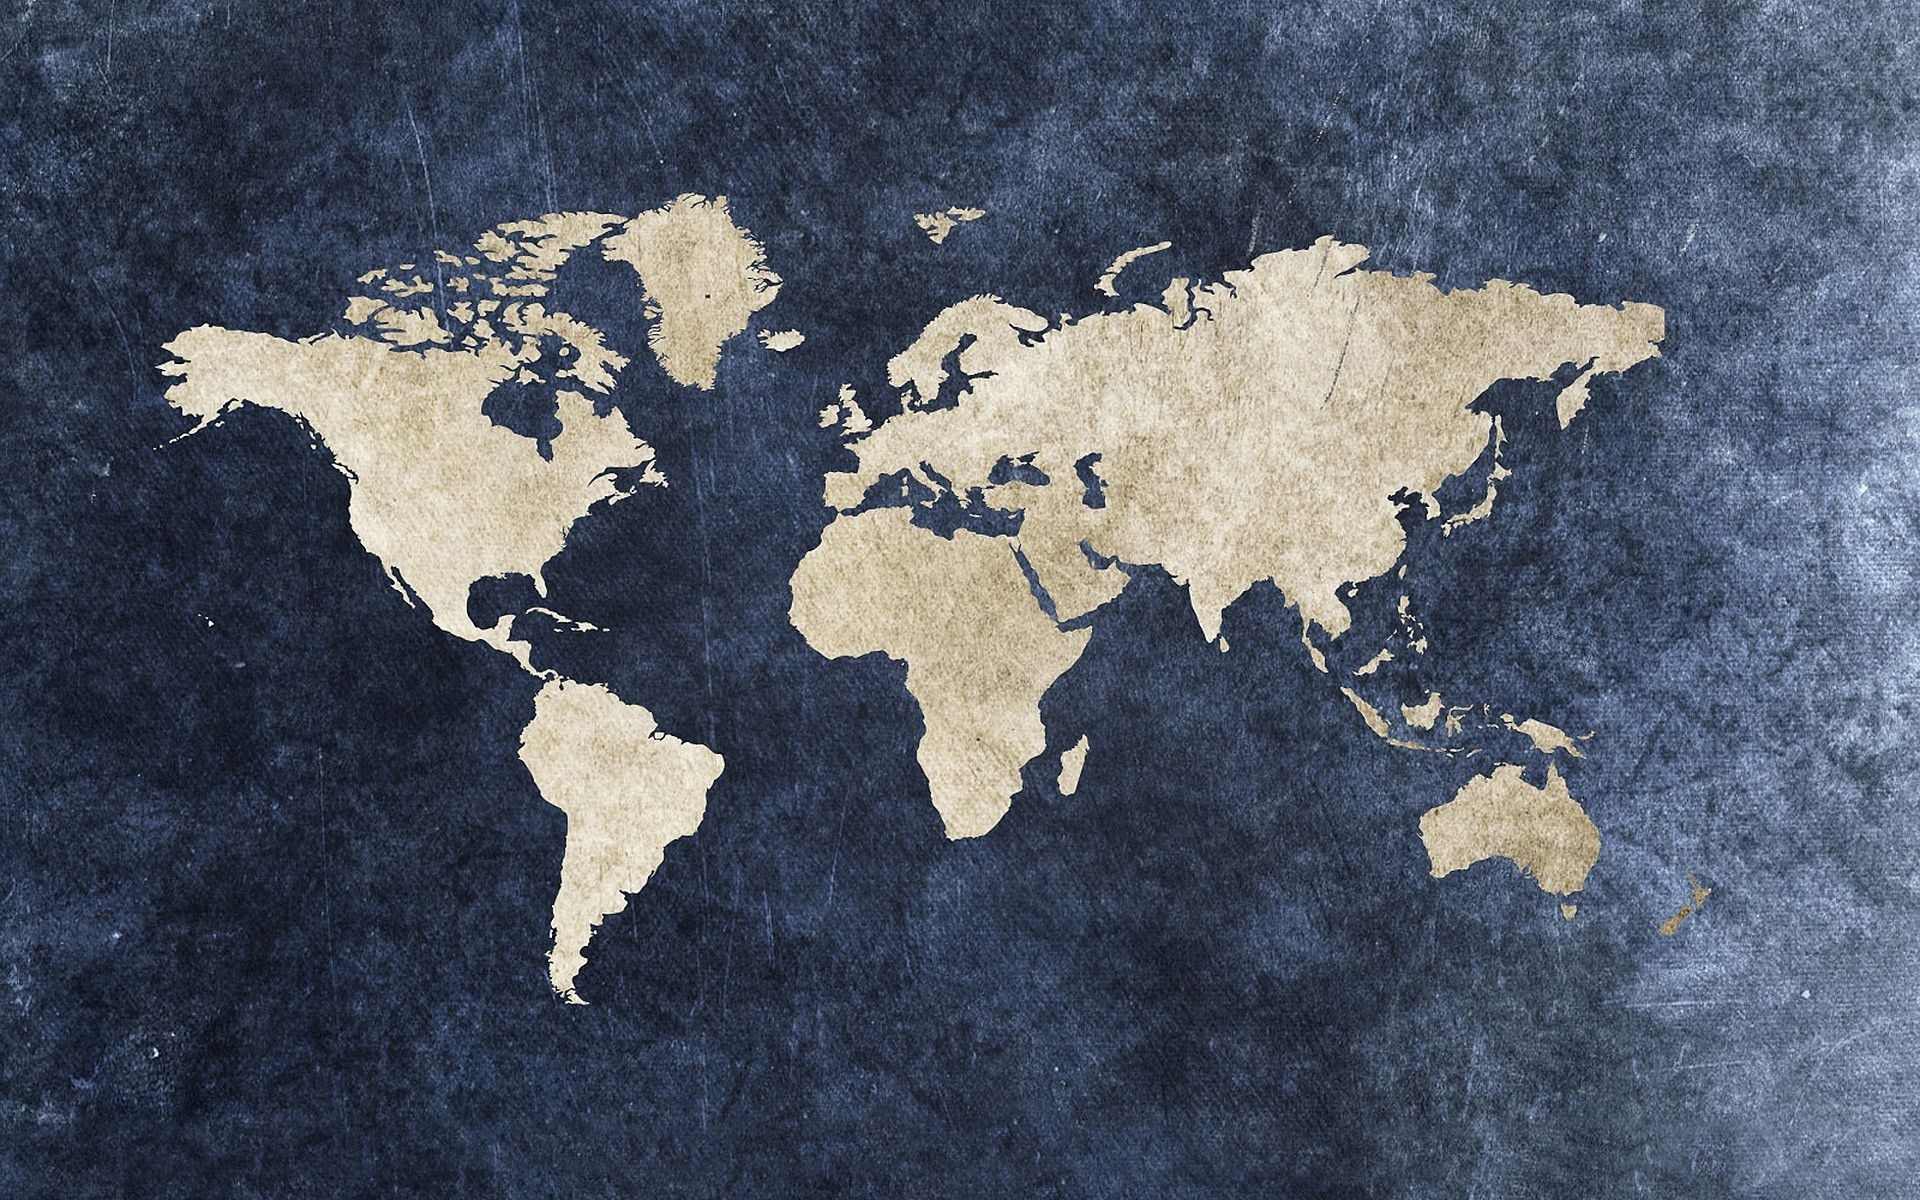 world map wallpapers - full hd wallpaper search | world traveler